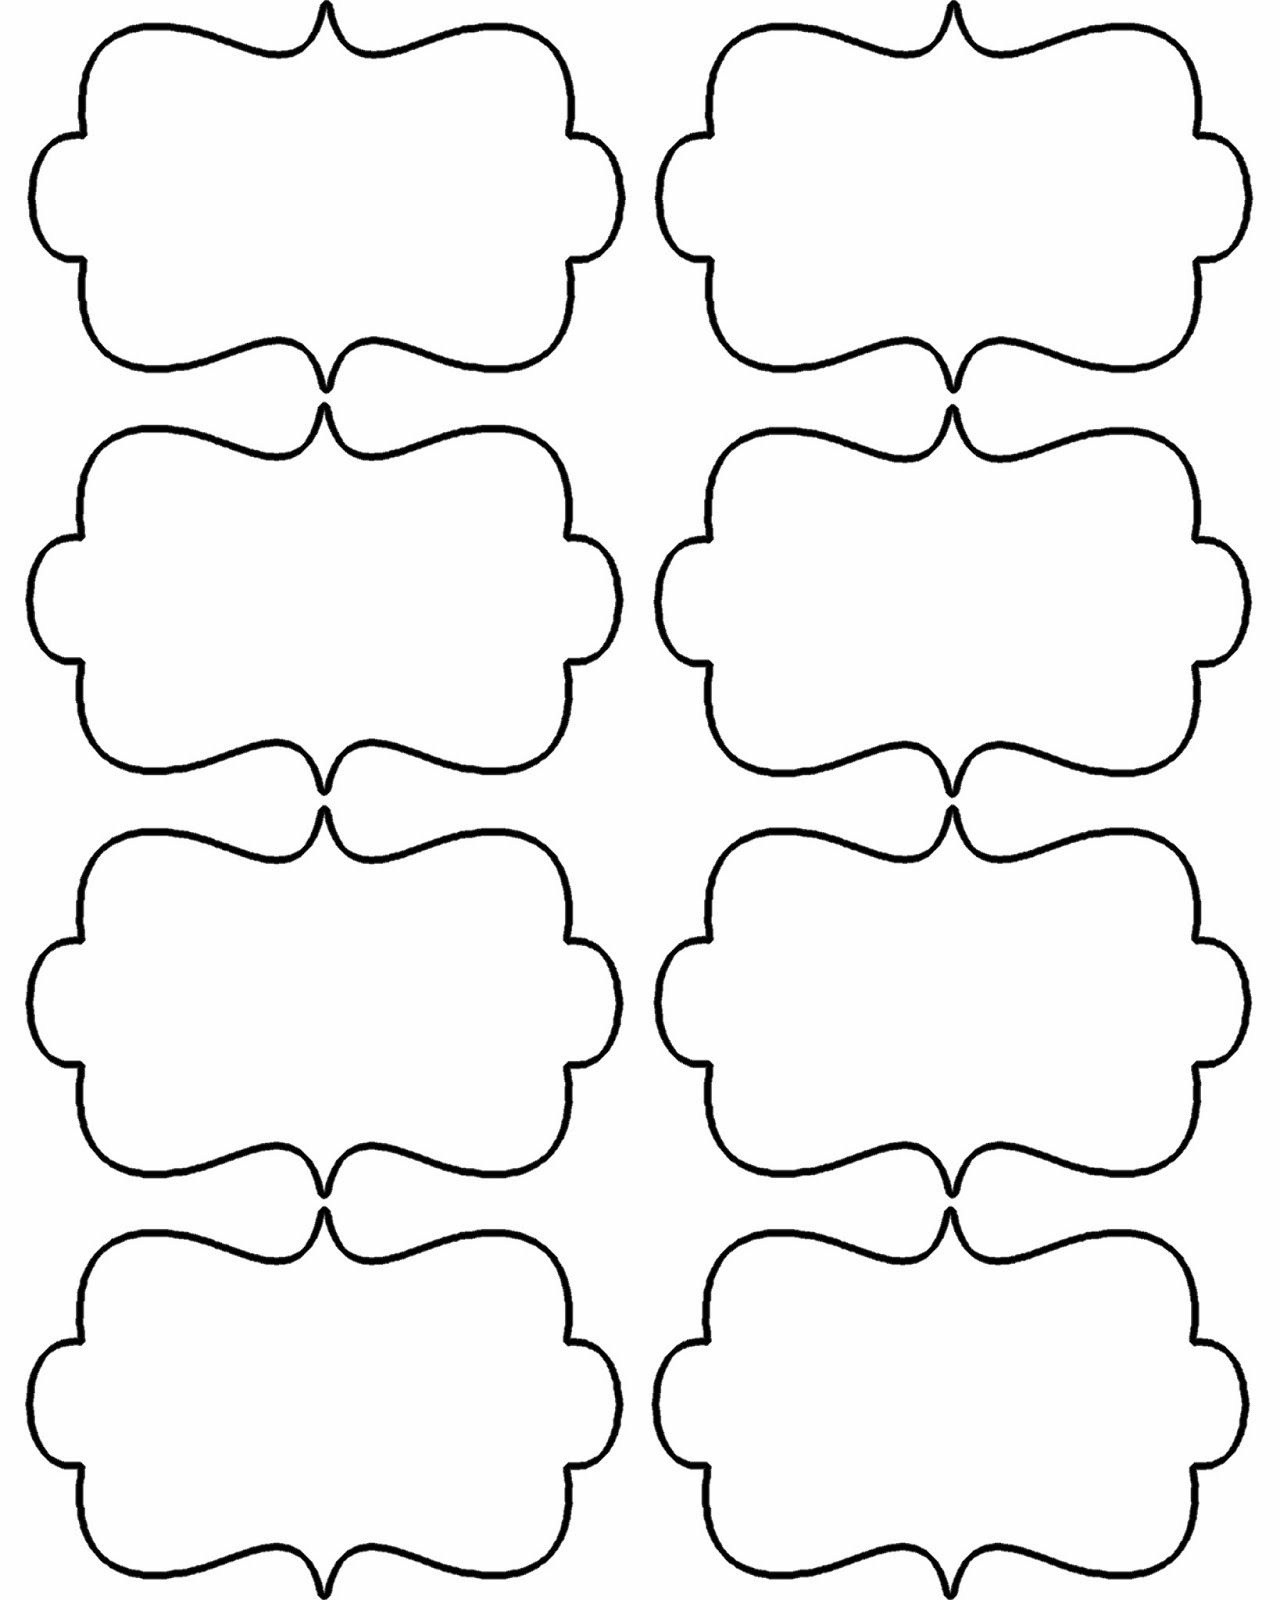 Blank Christmas Shapes Templates - Bing Images | Patterns - Fancy Labels Printable Free